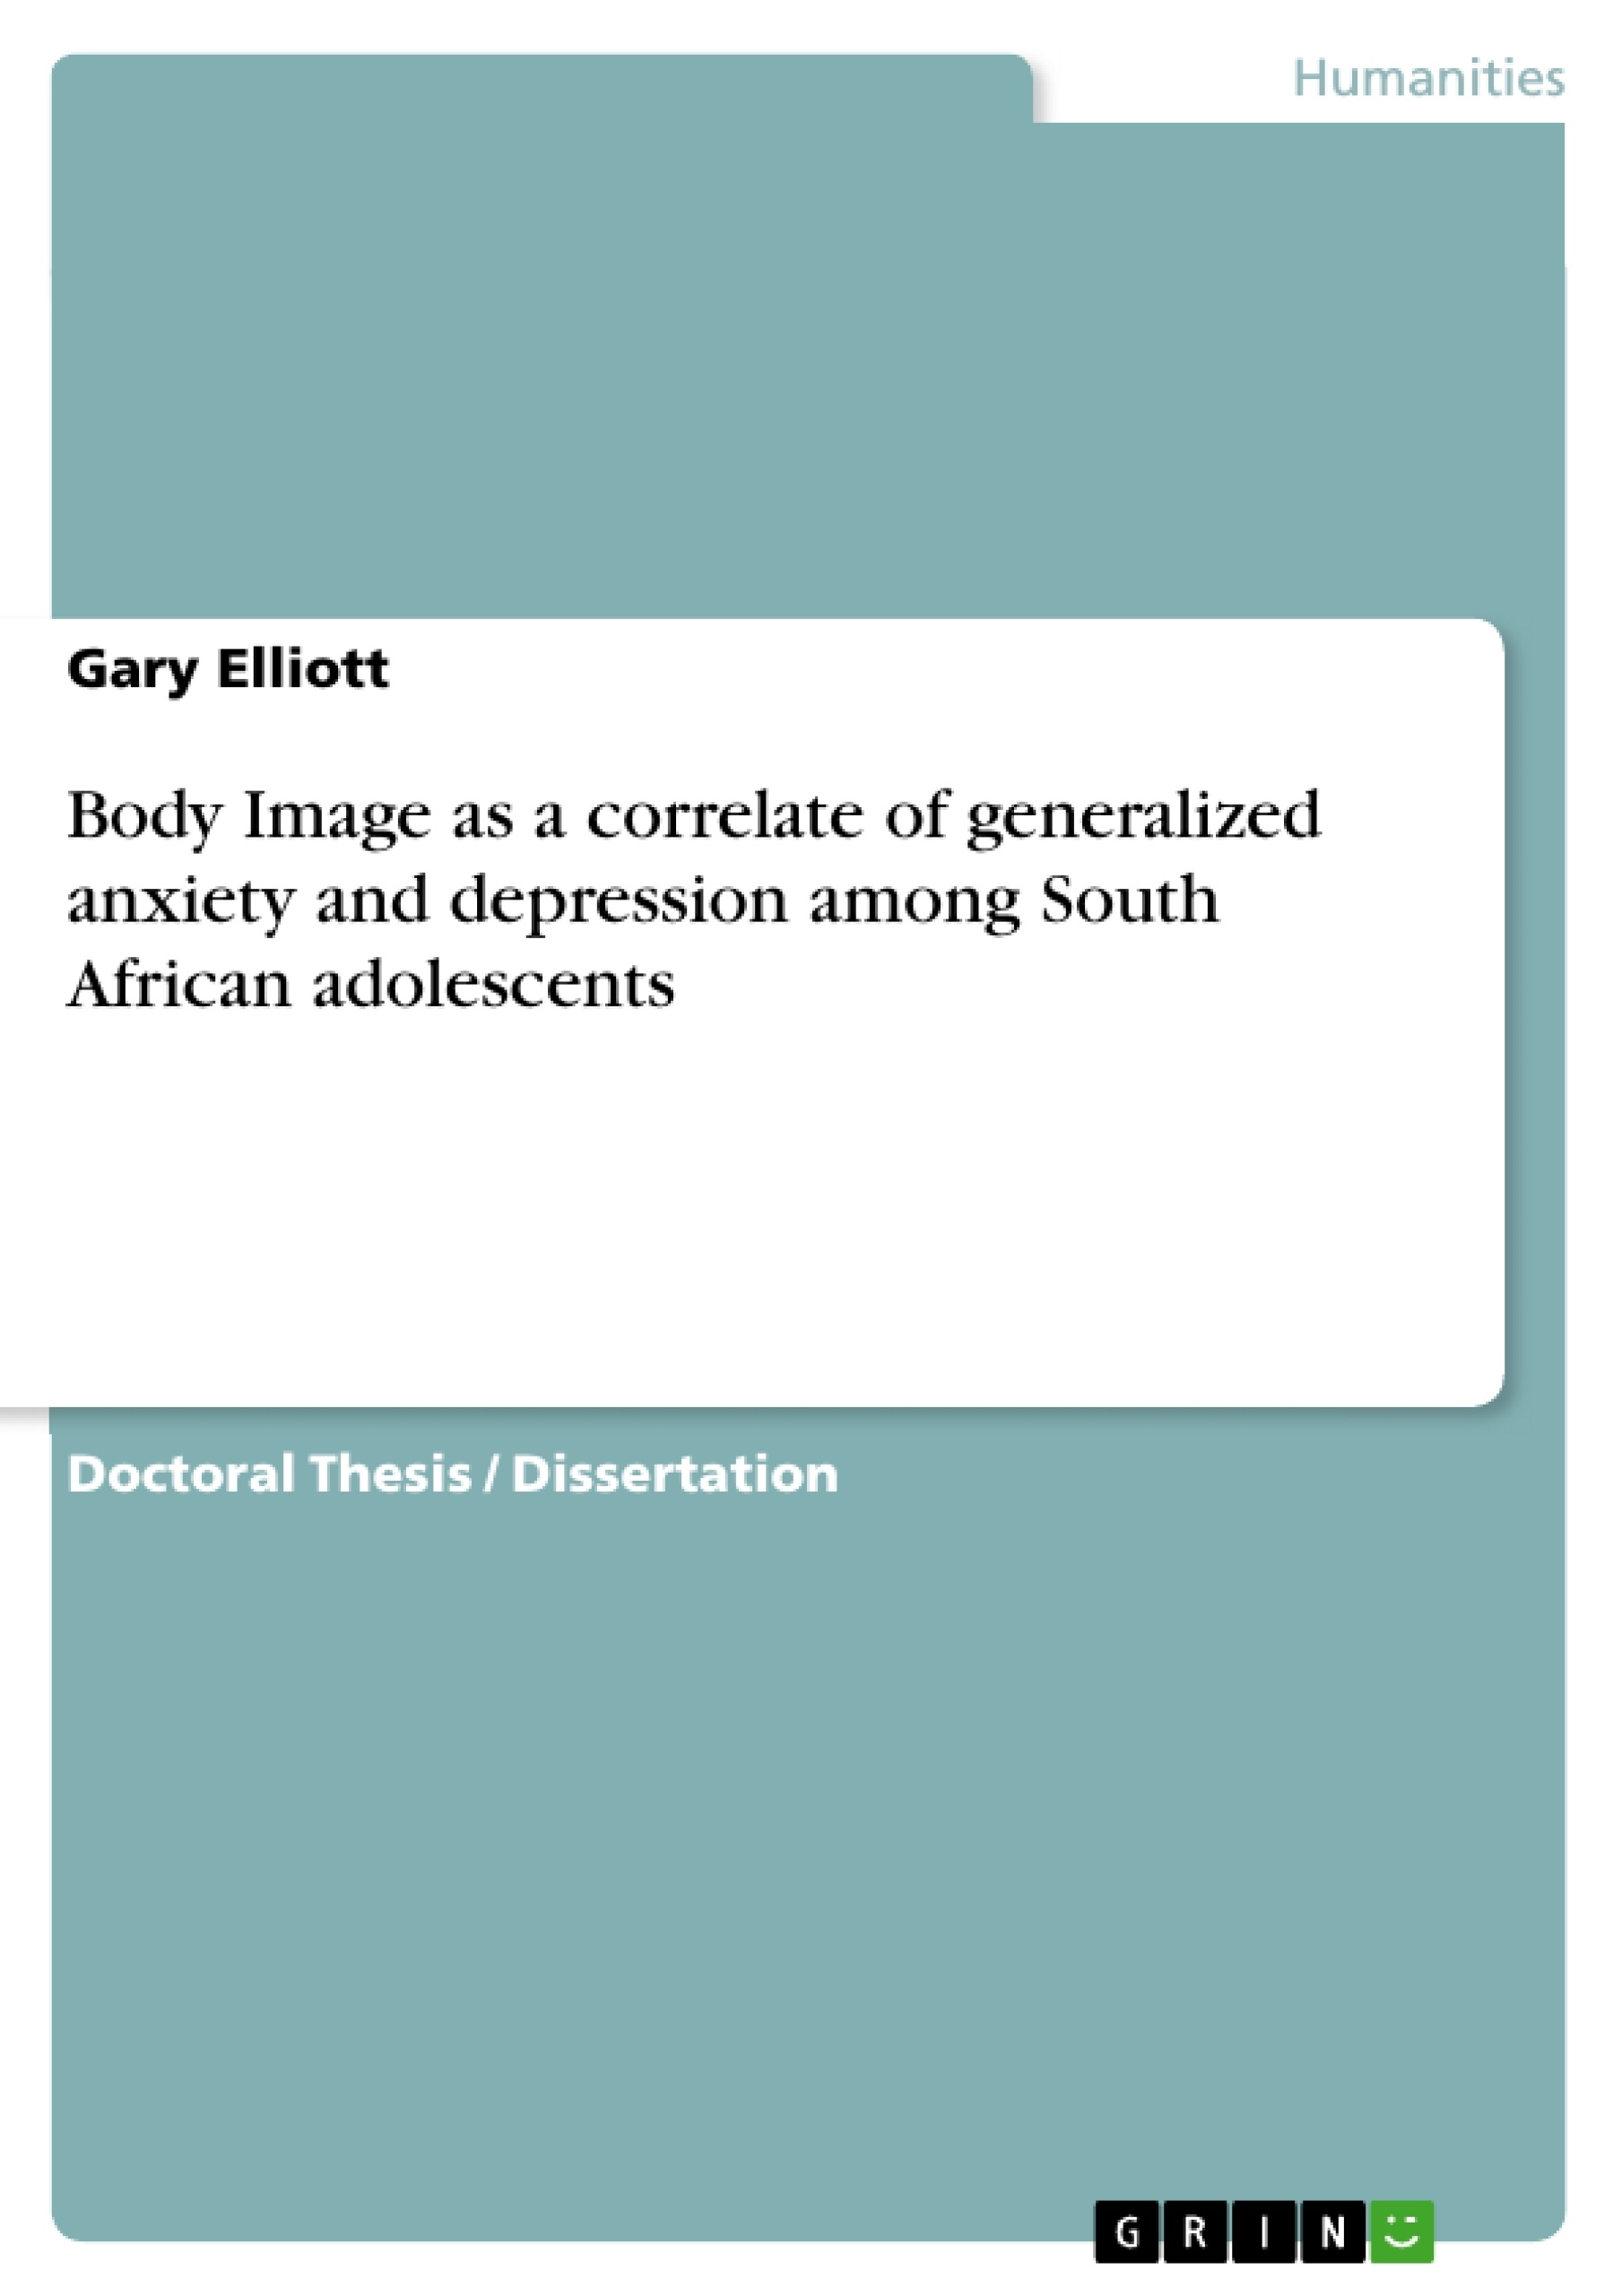 Title: Body Image as a correlate of generalized anxiety and depression among South African adolescents